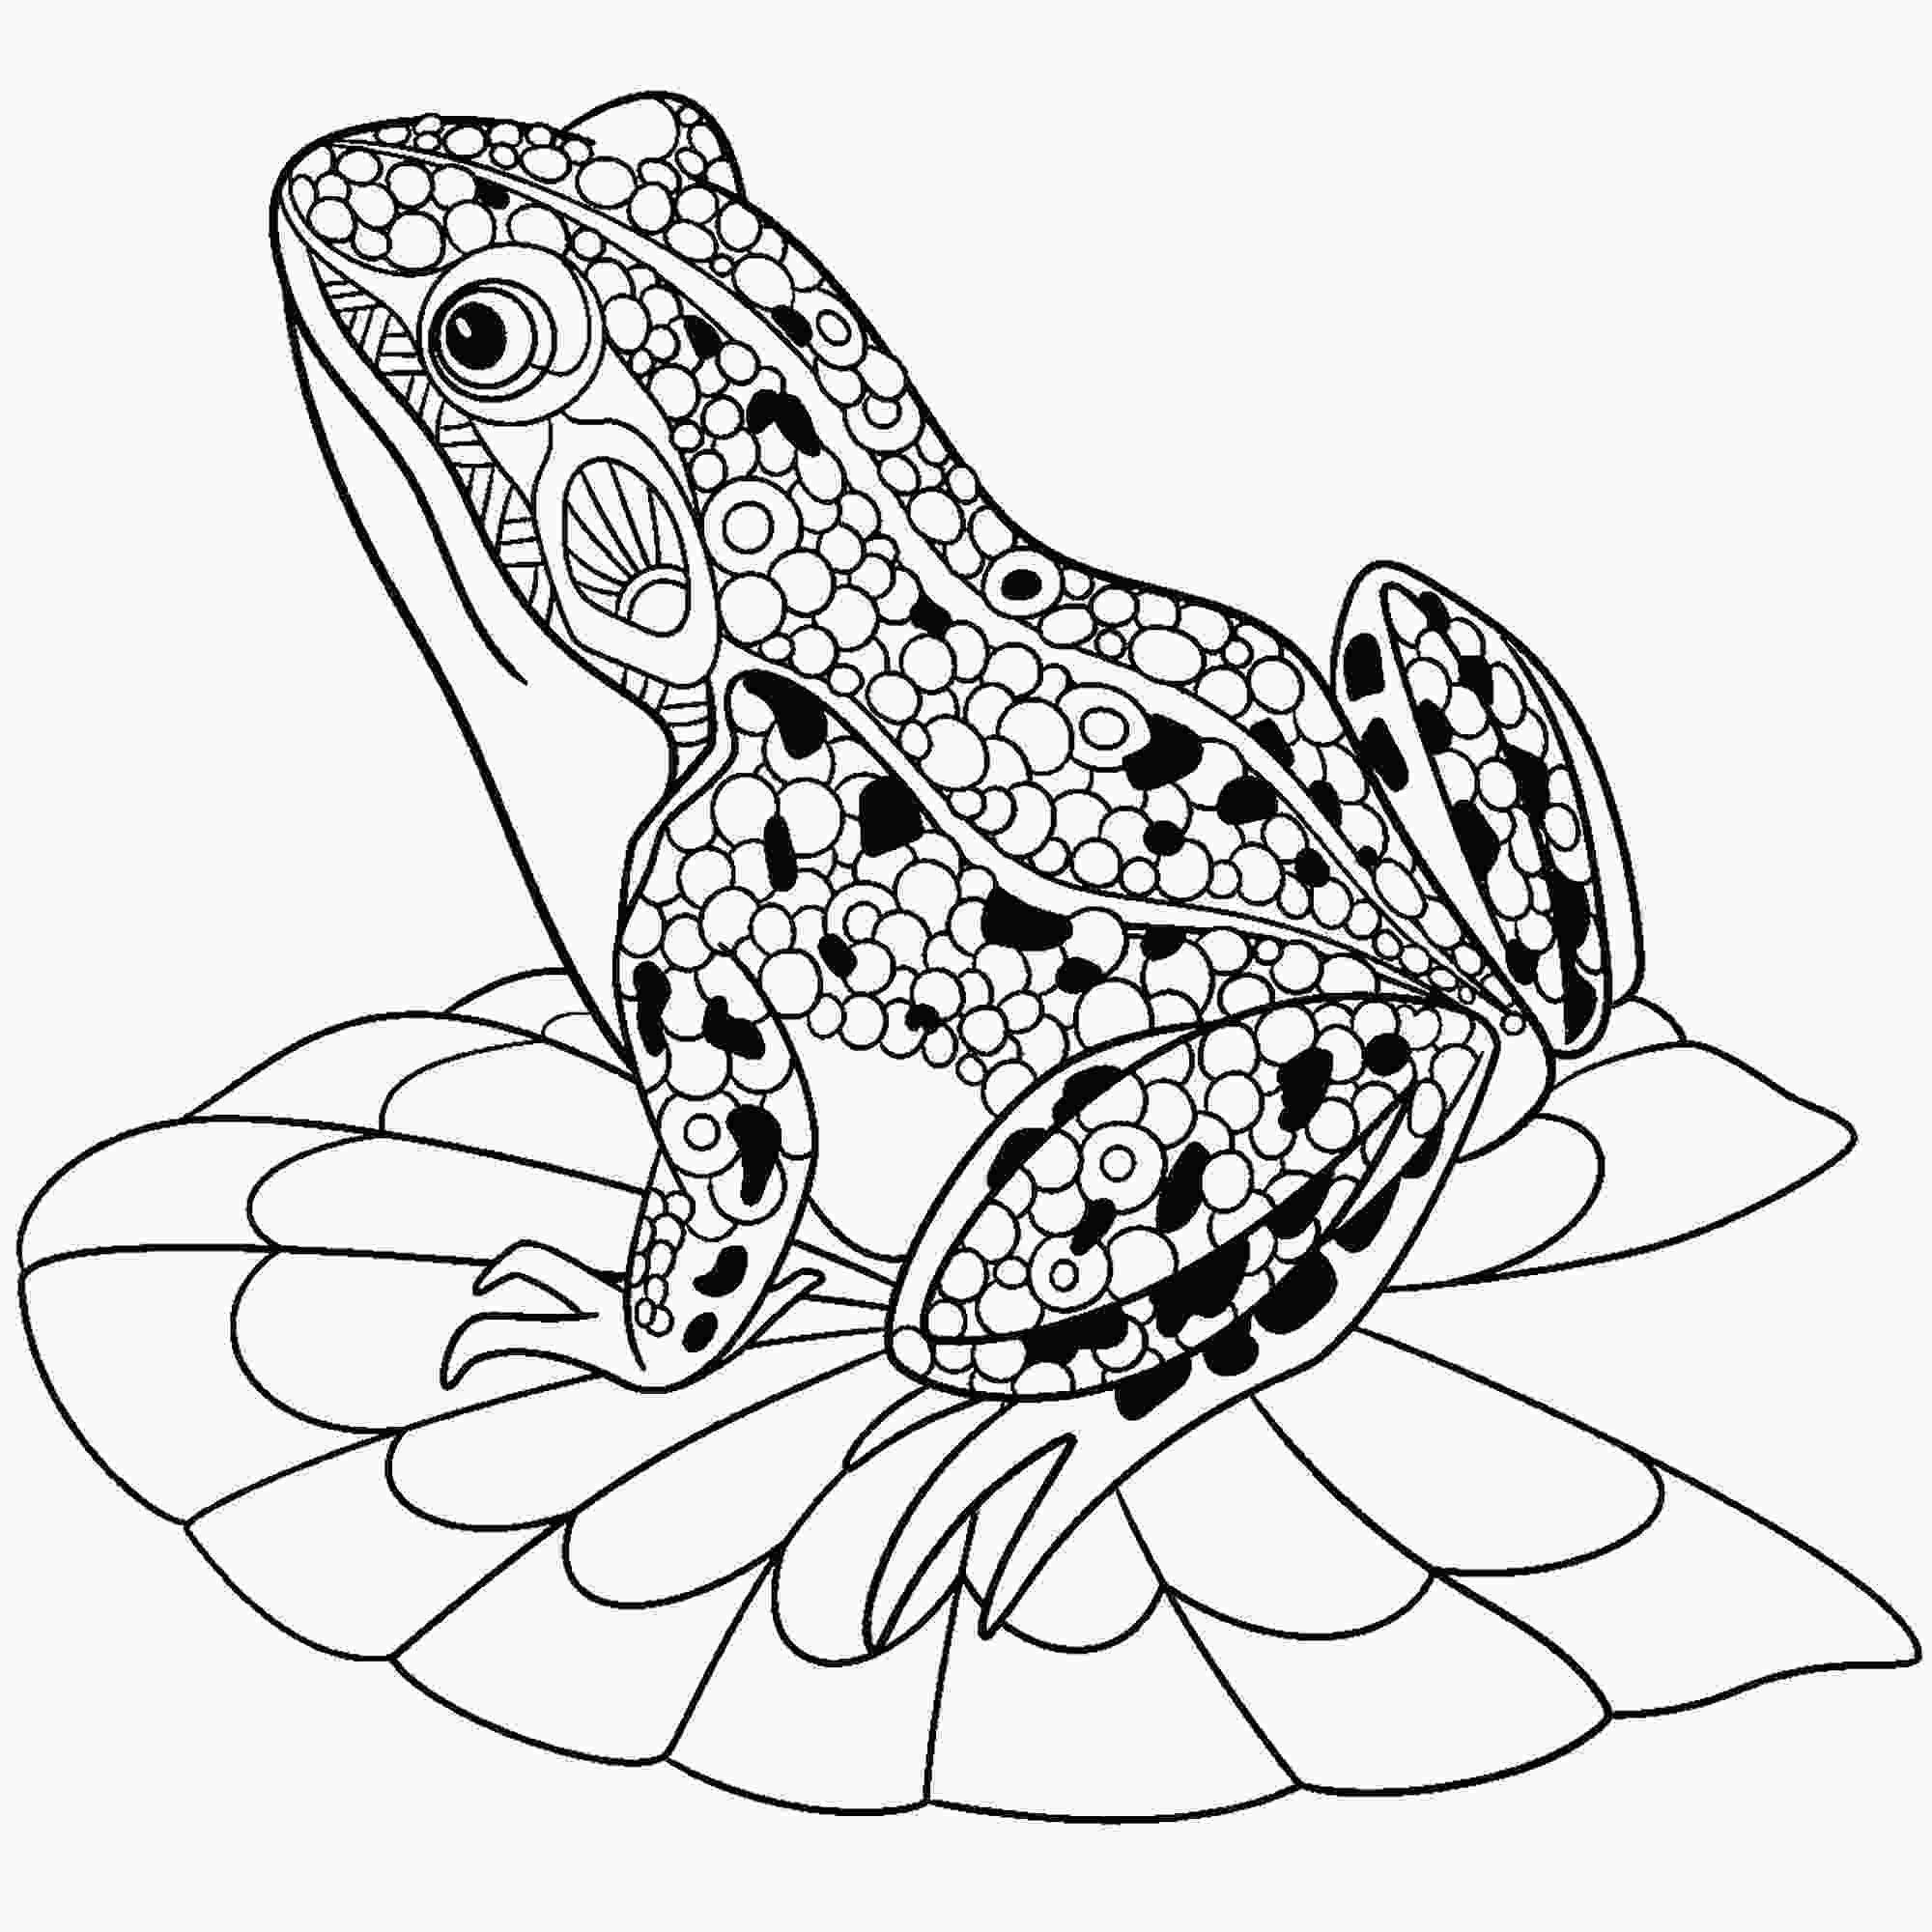 pictures of frogs to color frogs free to color for children frogs kids coloring pages